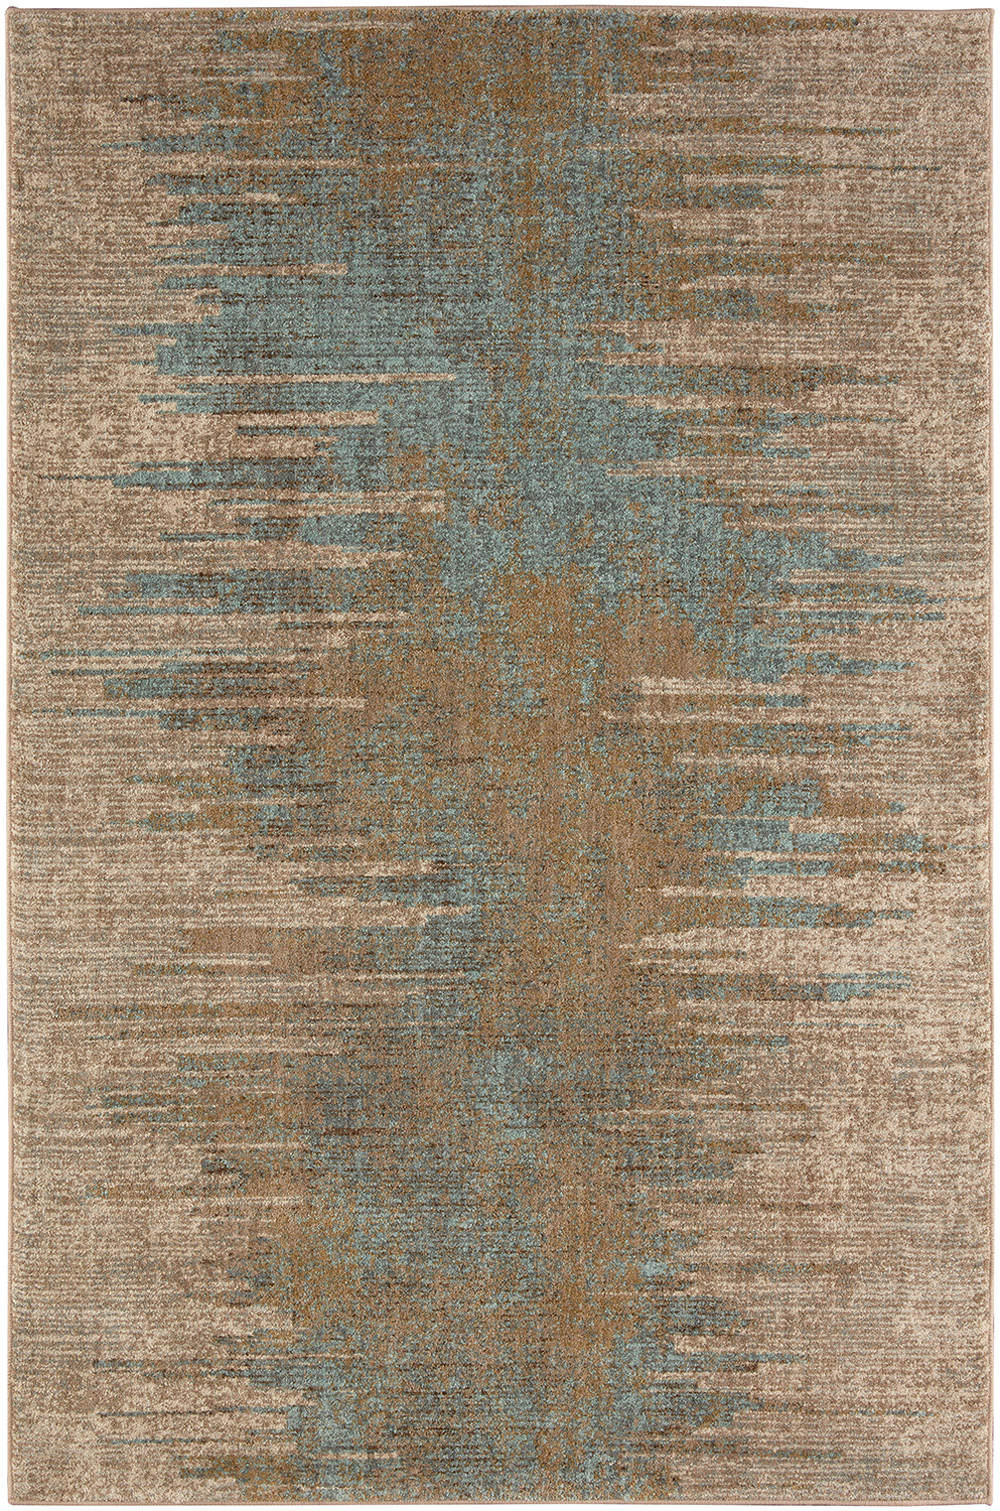 Karastan Touchstone Arielle Bronze by Virginia Langley Hazelnut Rug